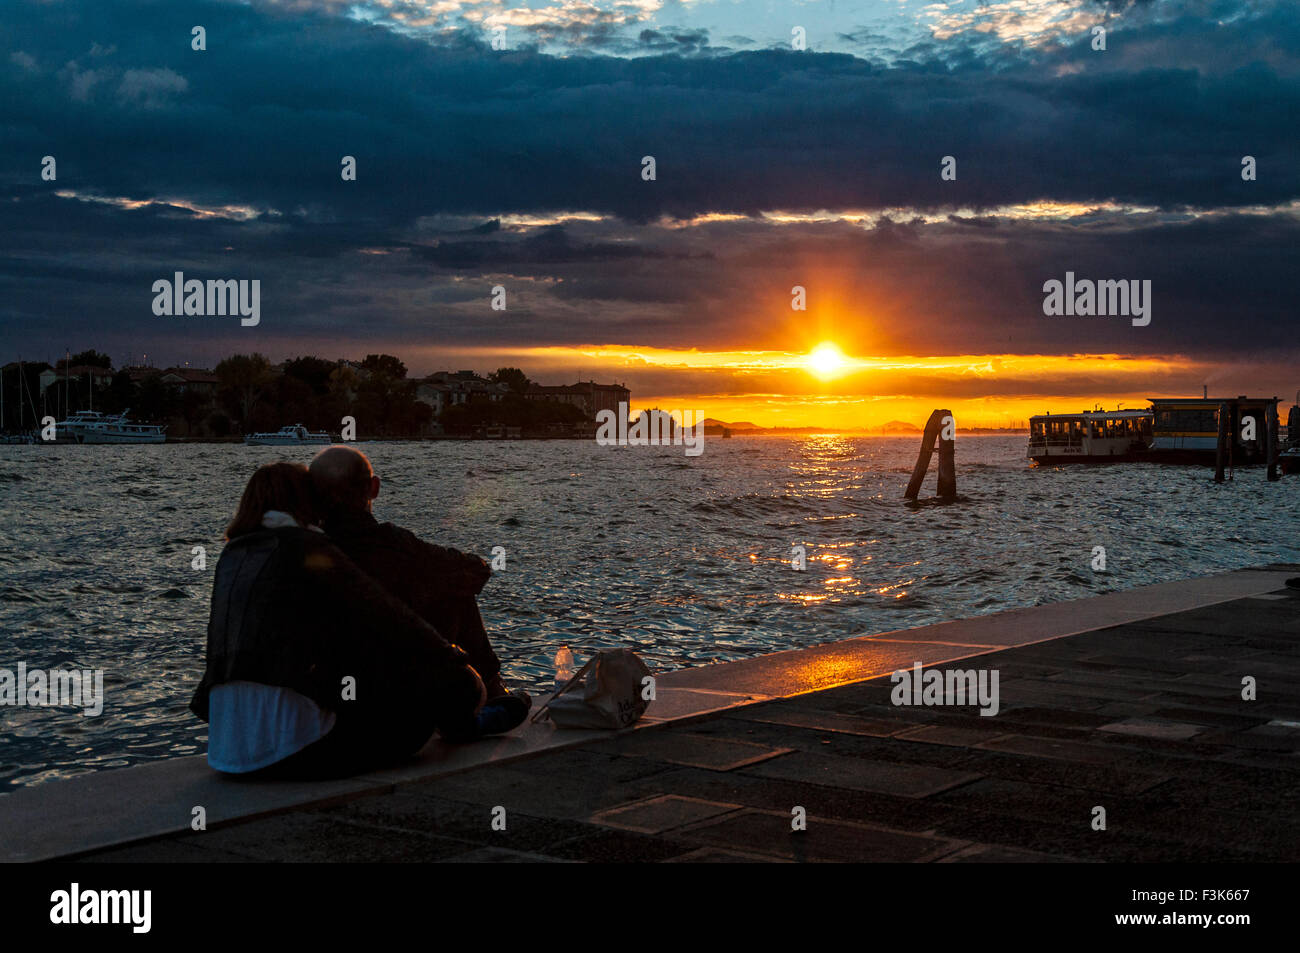 8th October 2015. San Basilio, Venice, Italy. A couple watch the sunset over Canale di Fusina. Credit:  Richard Stock Photo